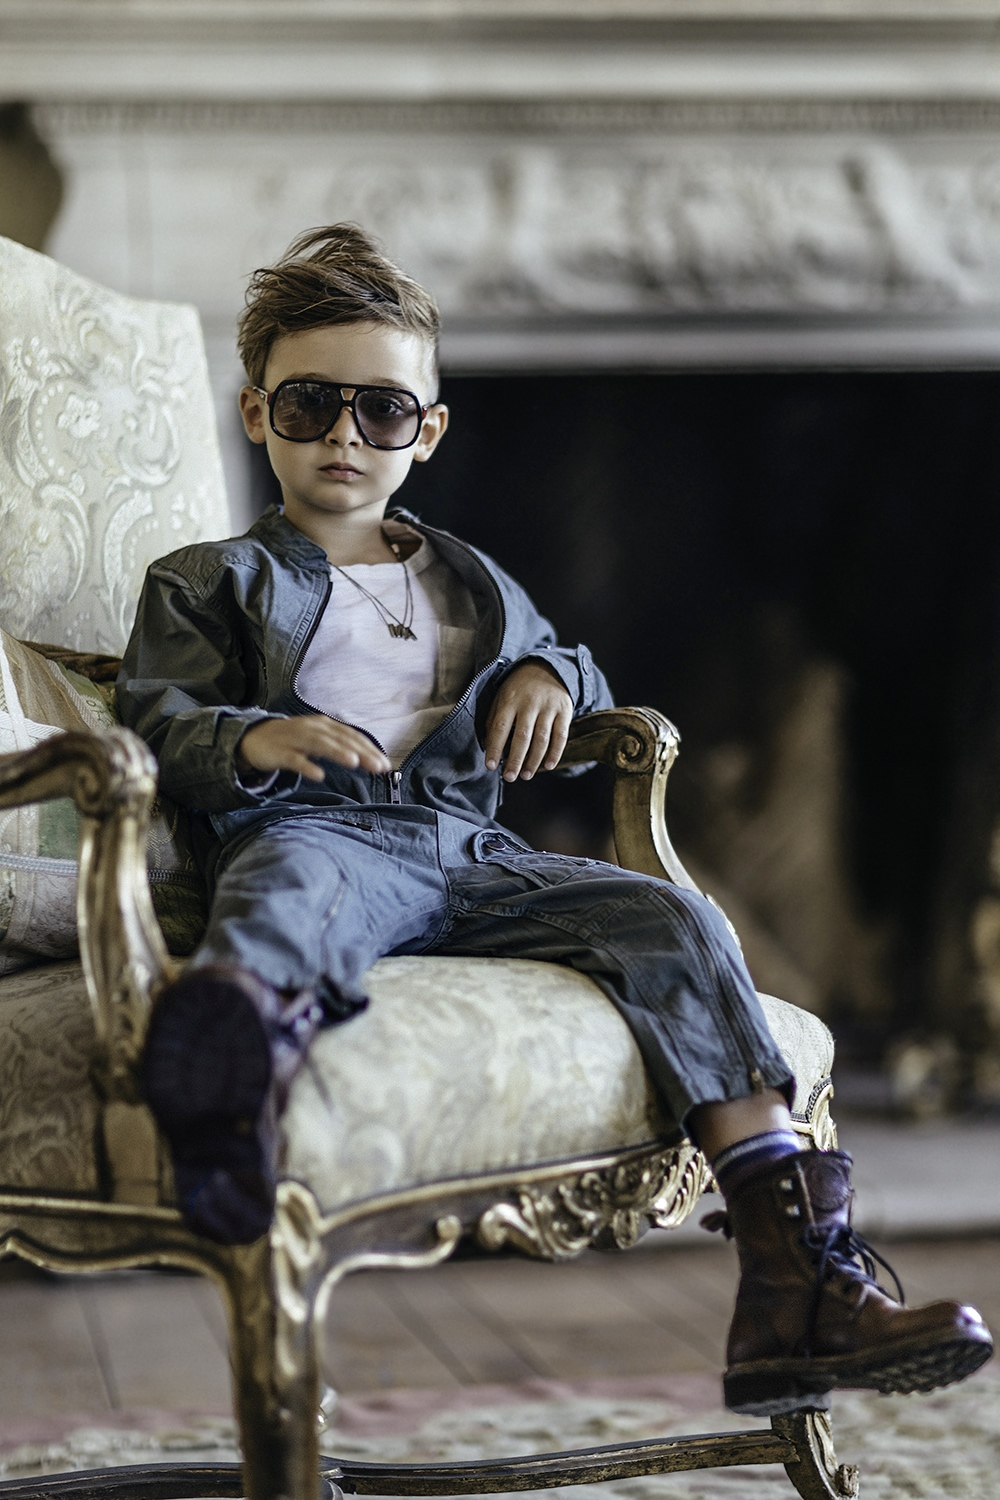 alonso_mateo_kids_fashion_felicidad_de_lucas_photographer_010.jpg